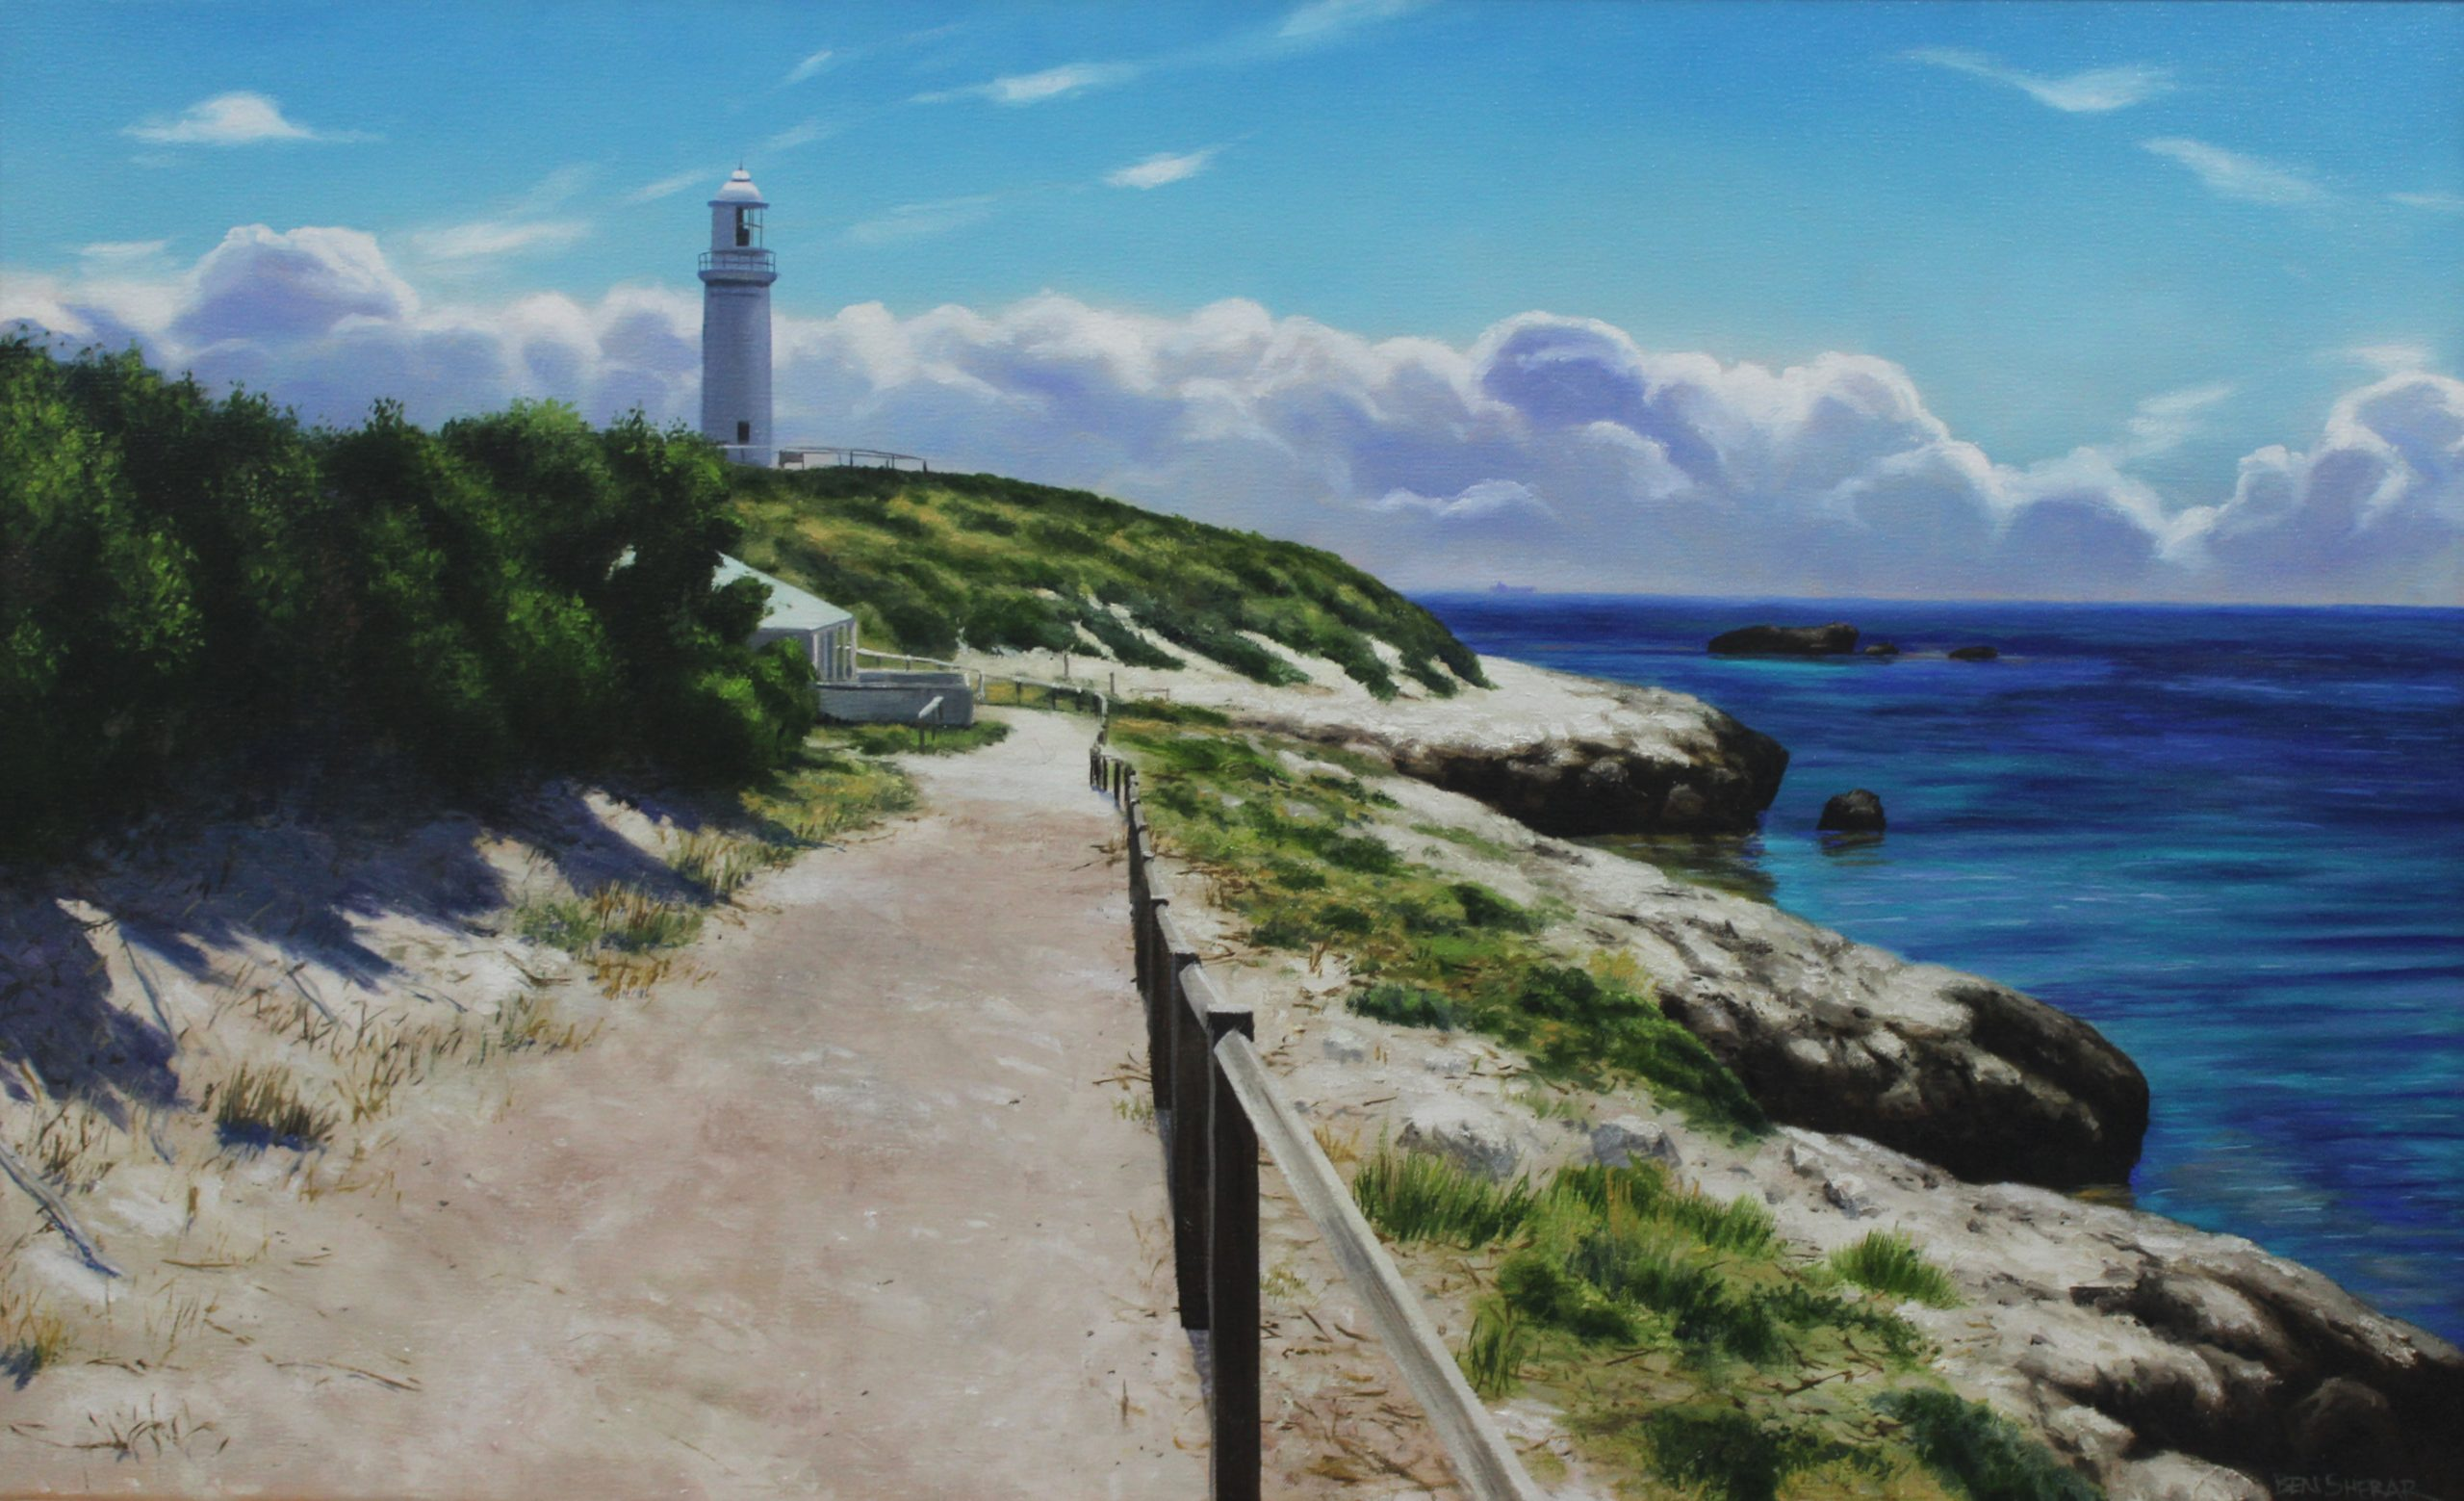 An original oil painting by ben Sherar depicting bathurst Lighthouse on Rottnest Island, just off the coast of perth in Western Australia